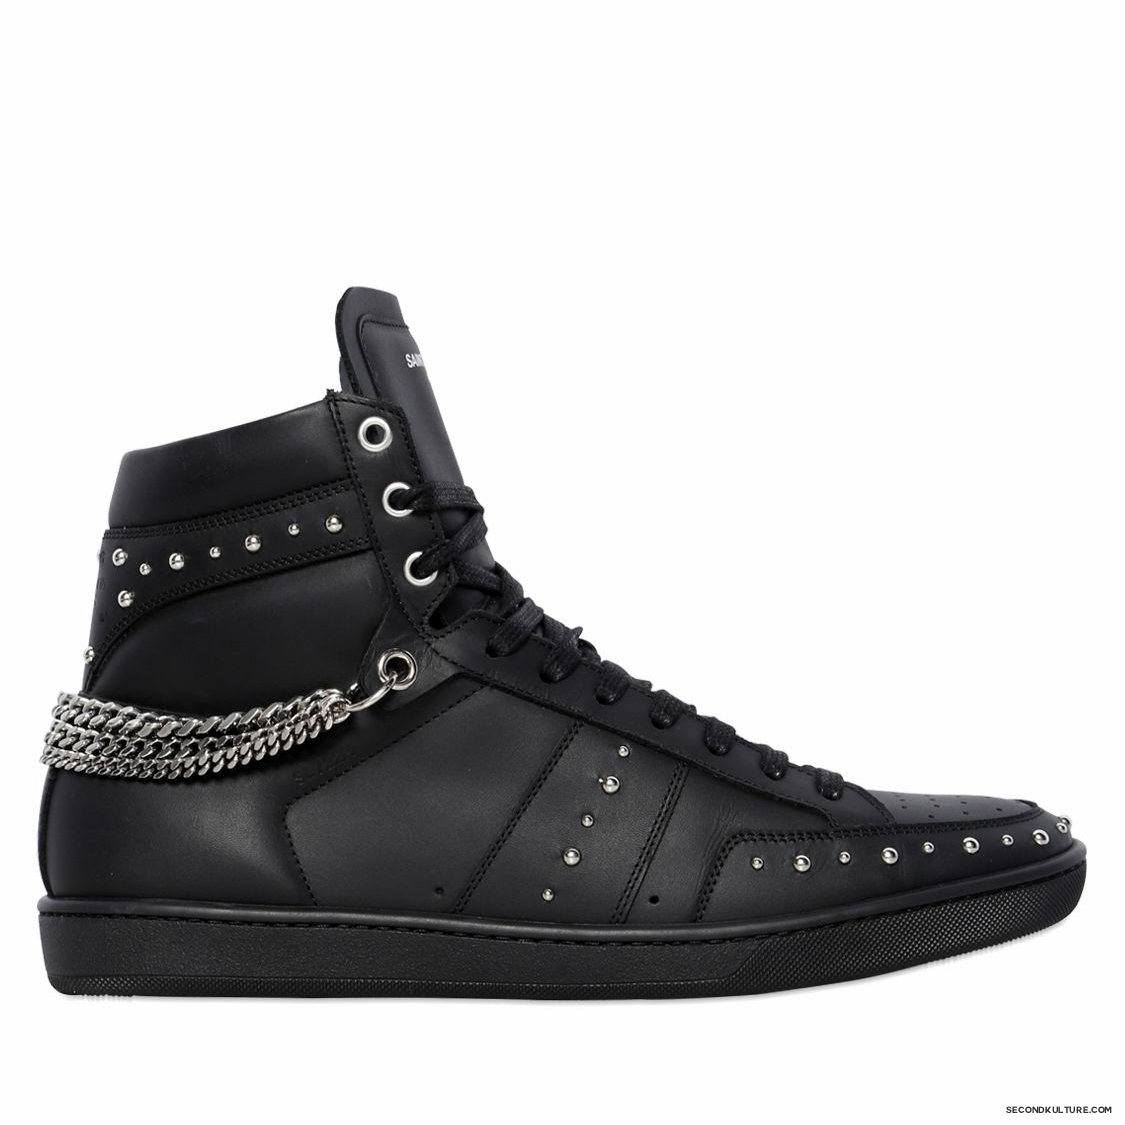 Saint-Laurent-Black-Studded-Chained-Leather-High-Top-Sneakers-Fall-Winter-2015-1